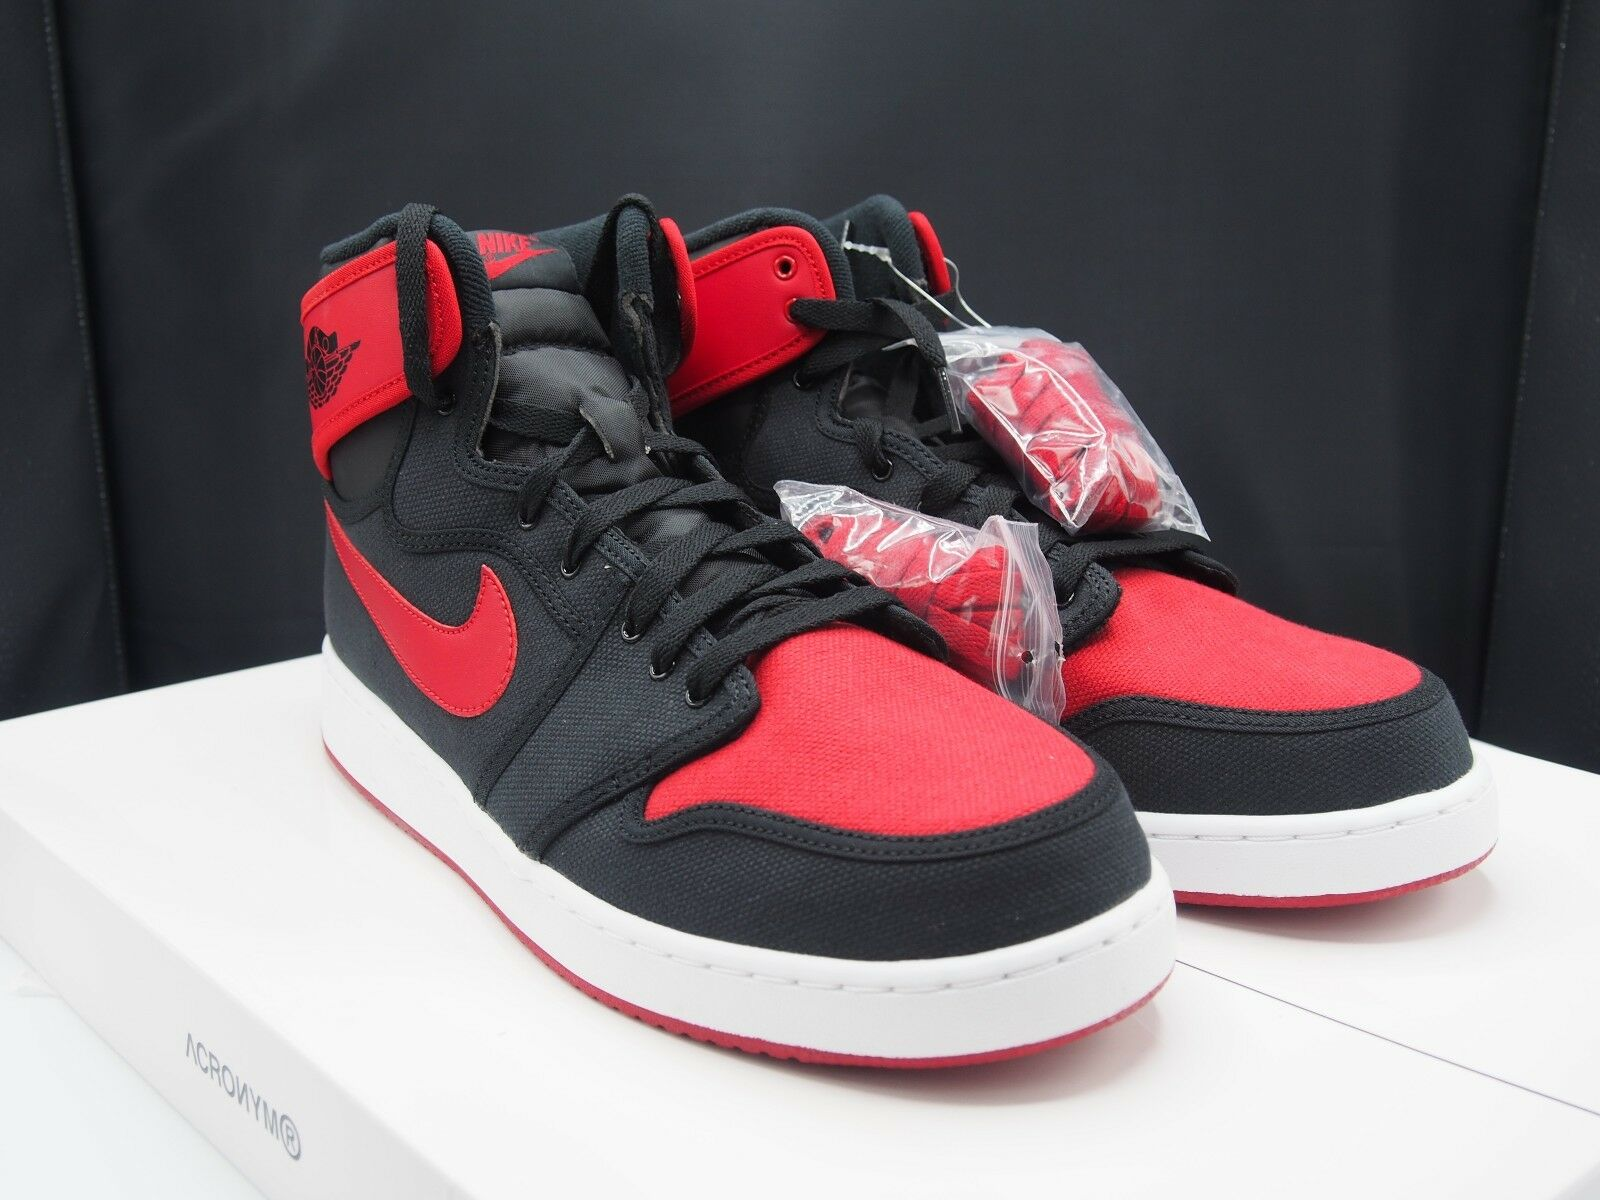 Nike Air Jordan 1 KO High OG Banned 638471-001